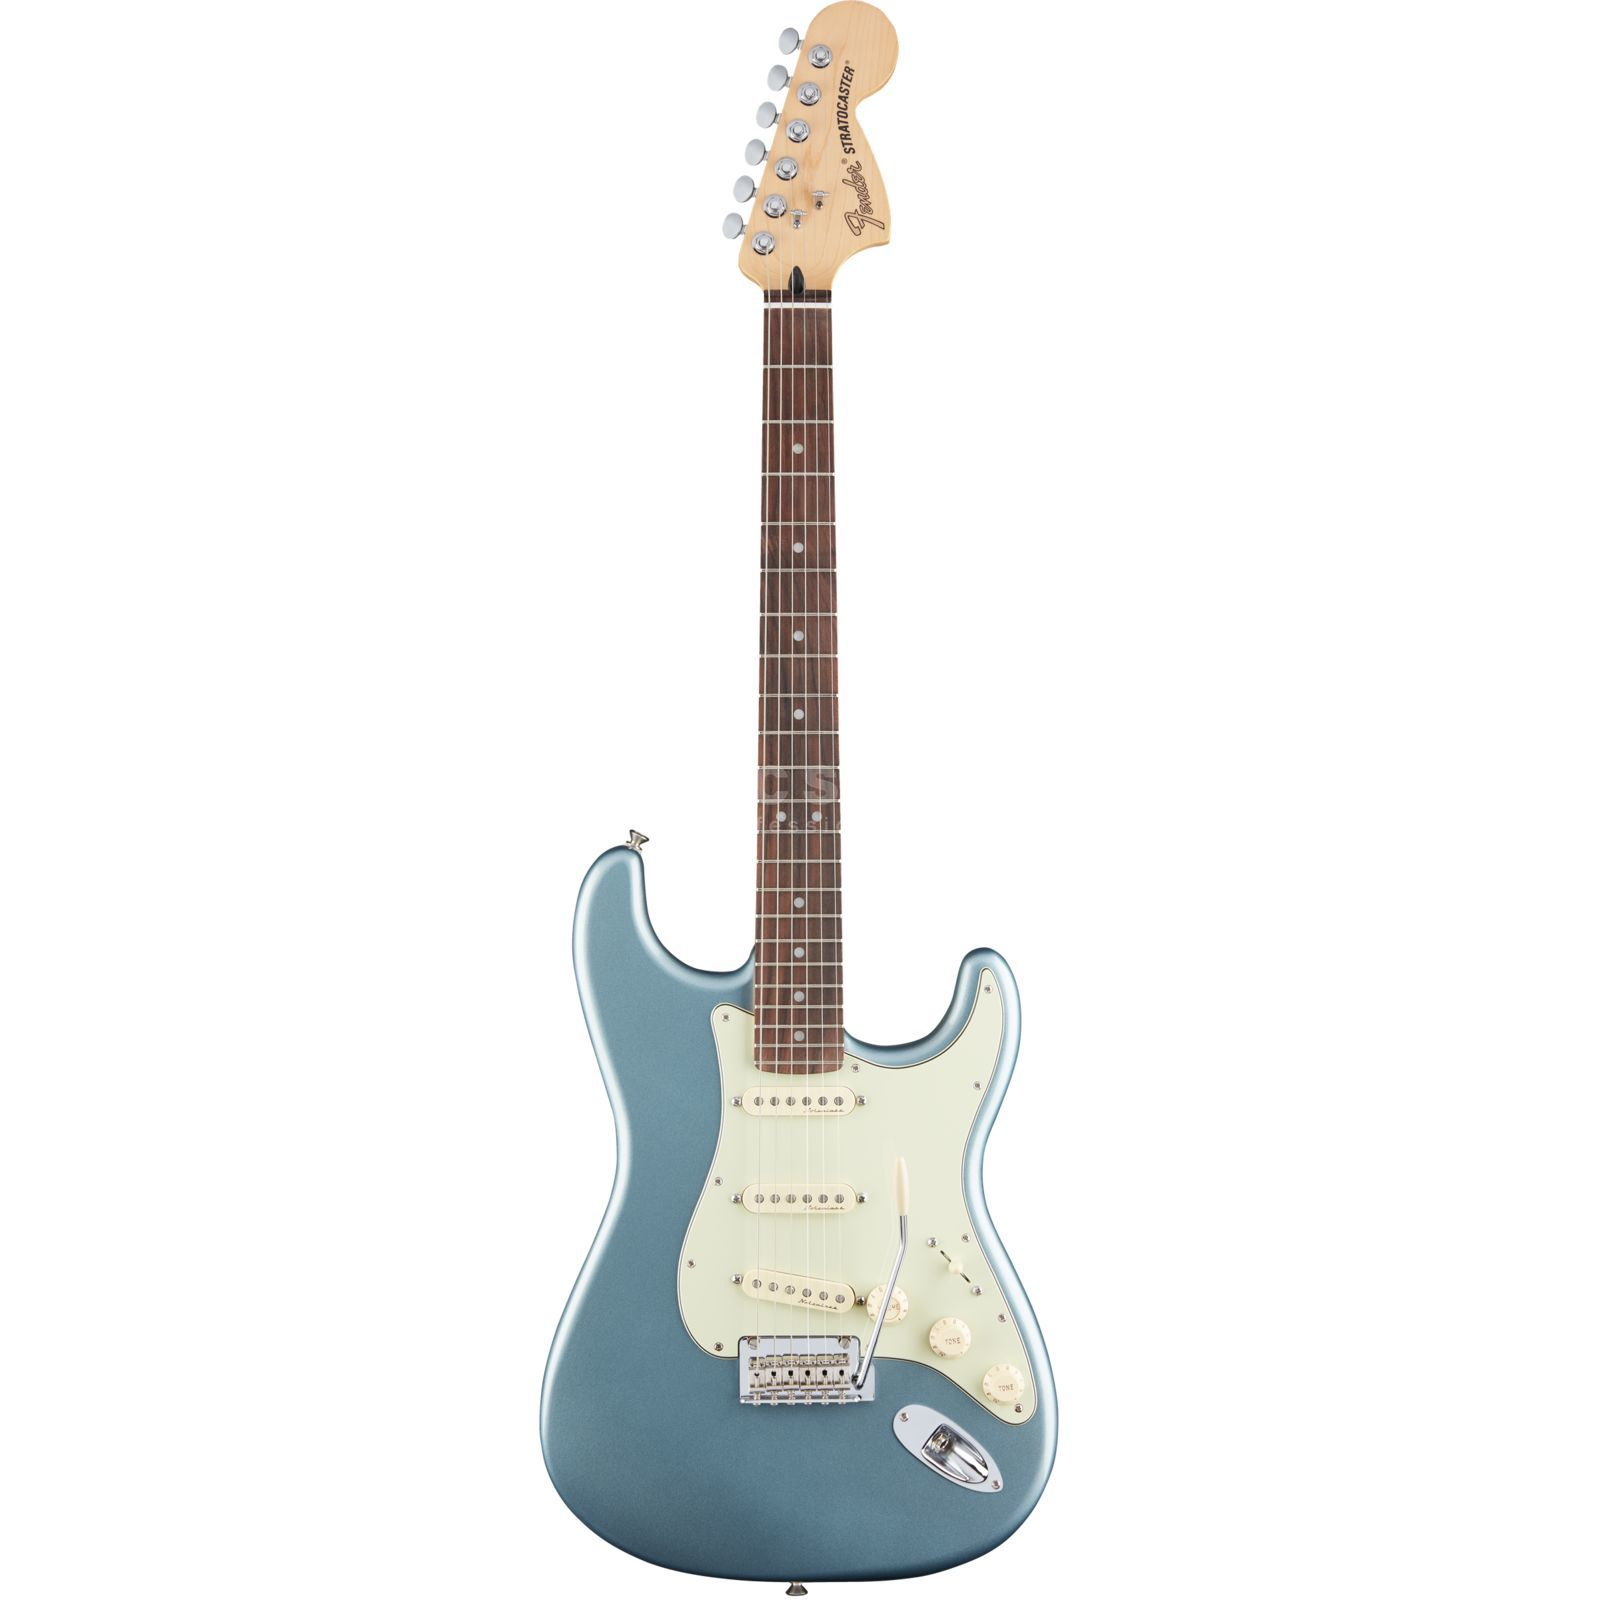 Fender Deluxe Roadhouse Stratocaster RW MIB Mystic Ice Blue Product Image